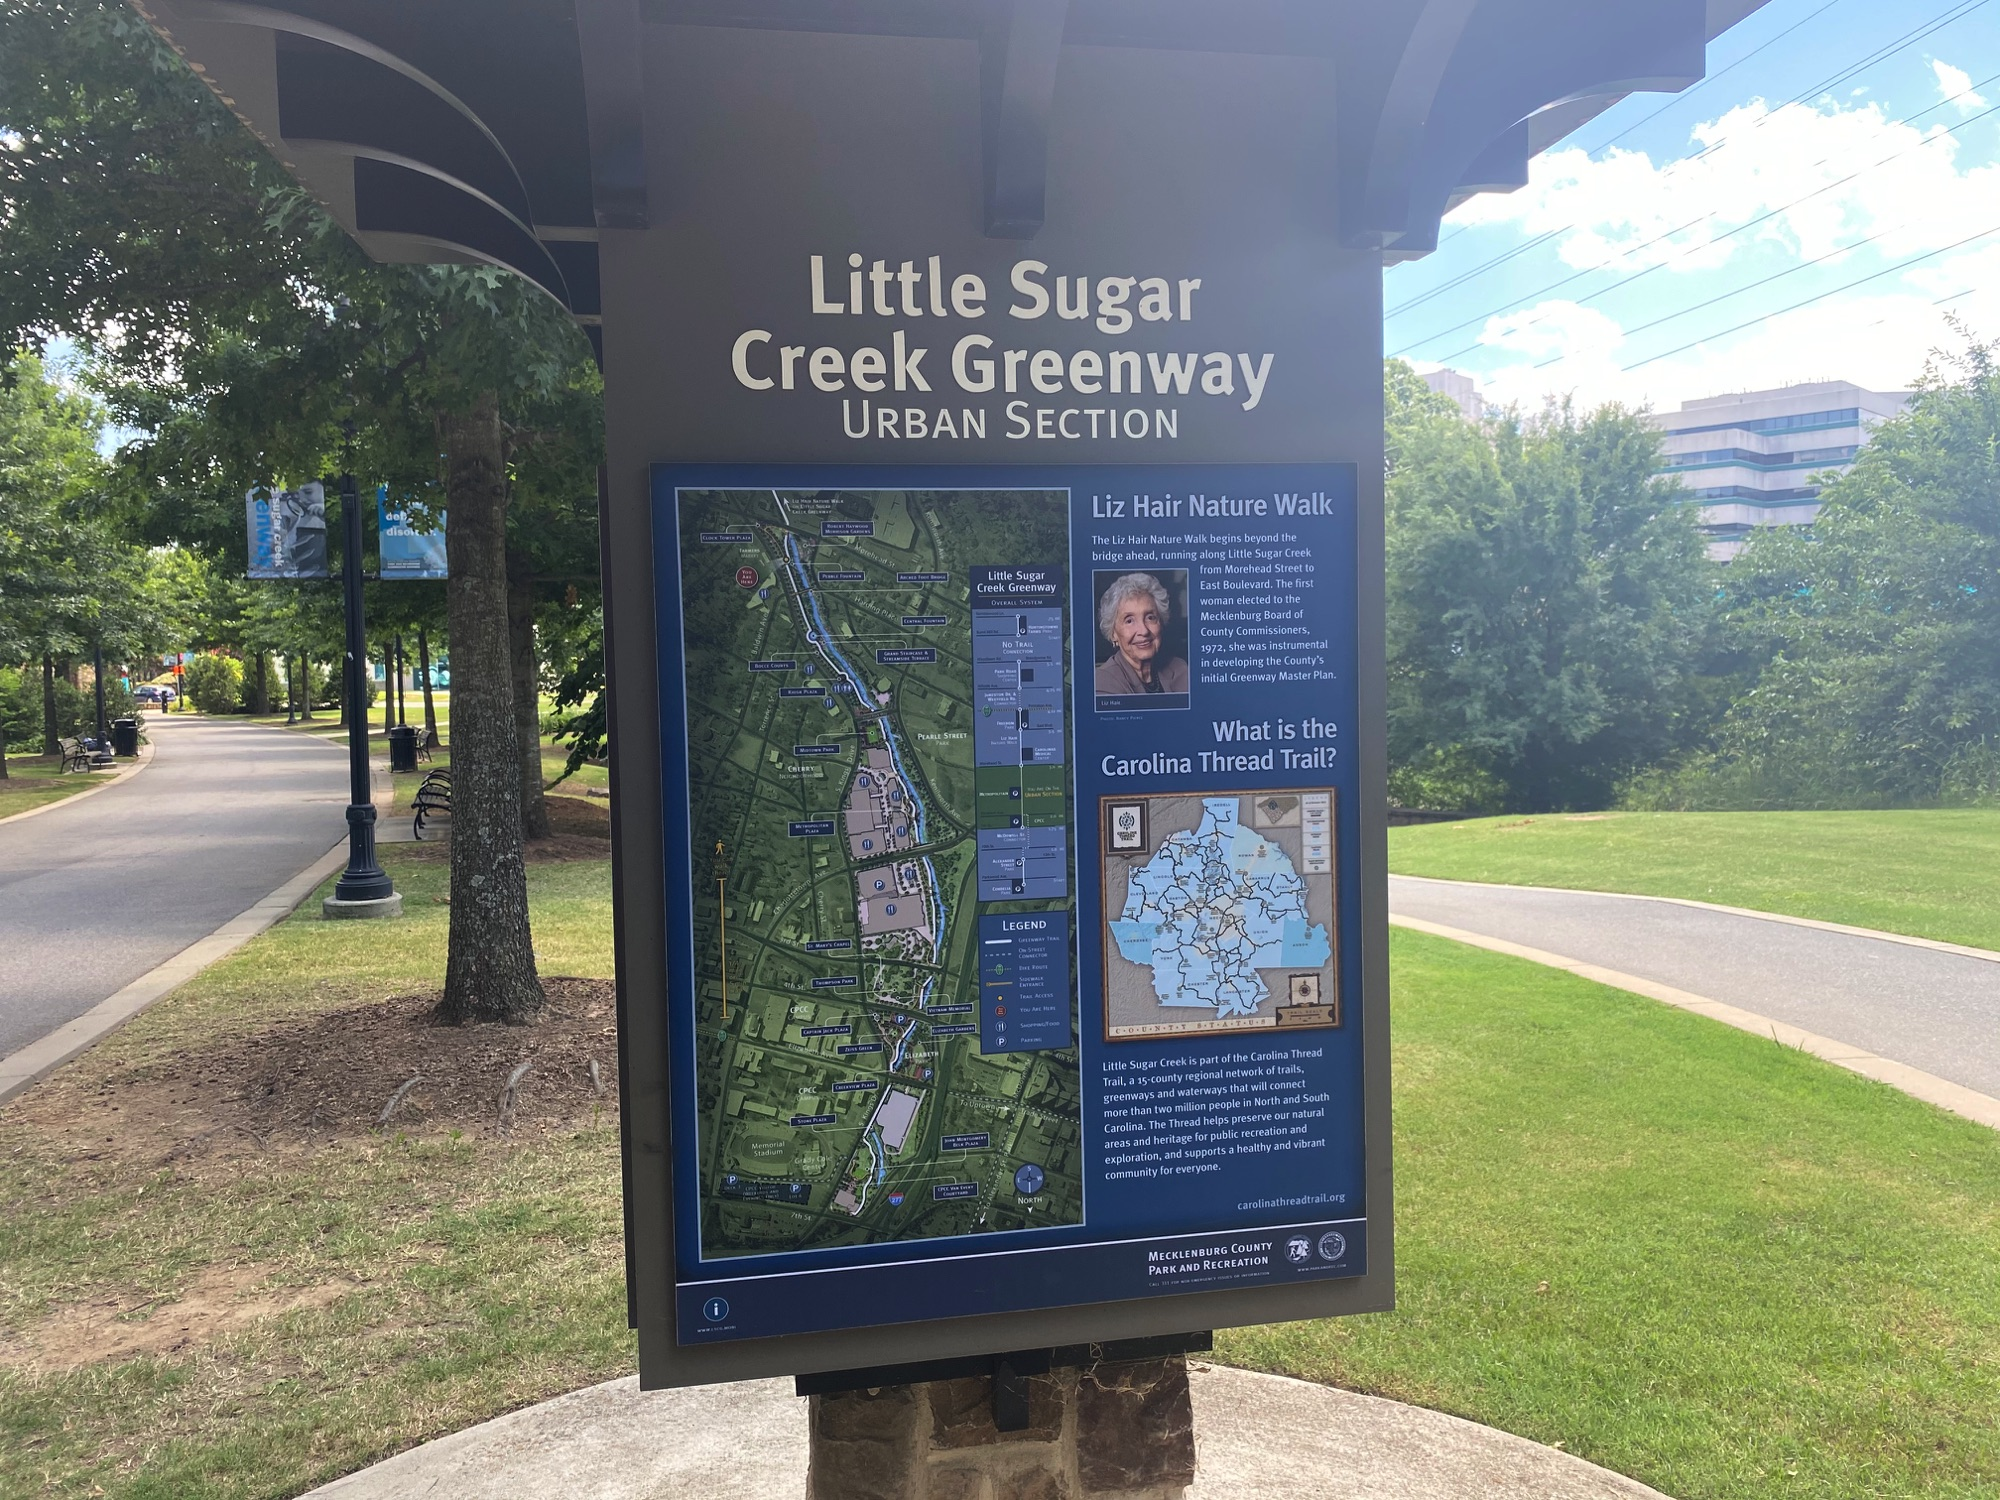 Little Sugar Creek Greenway, Urban Section, Charlotte NC